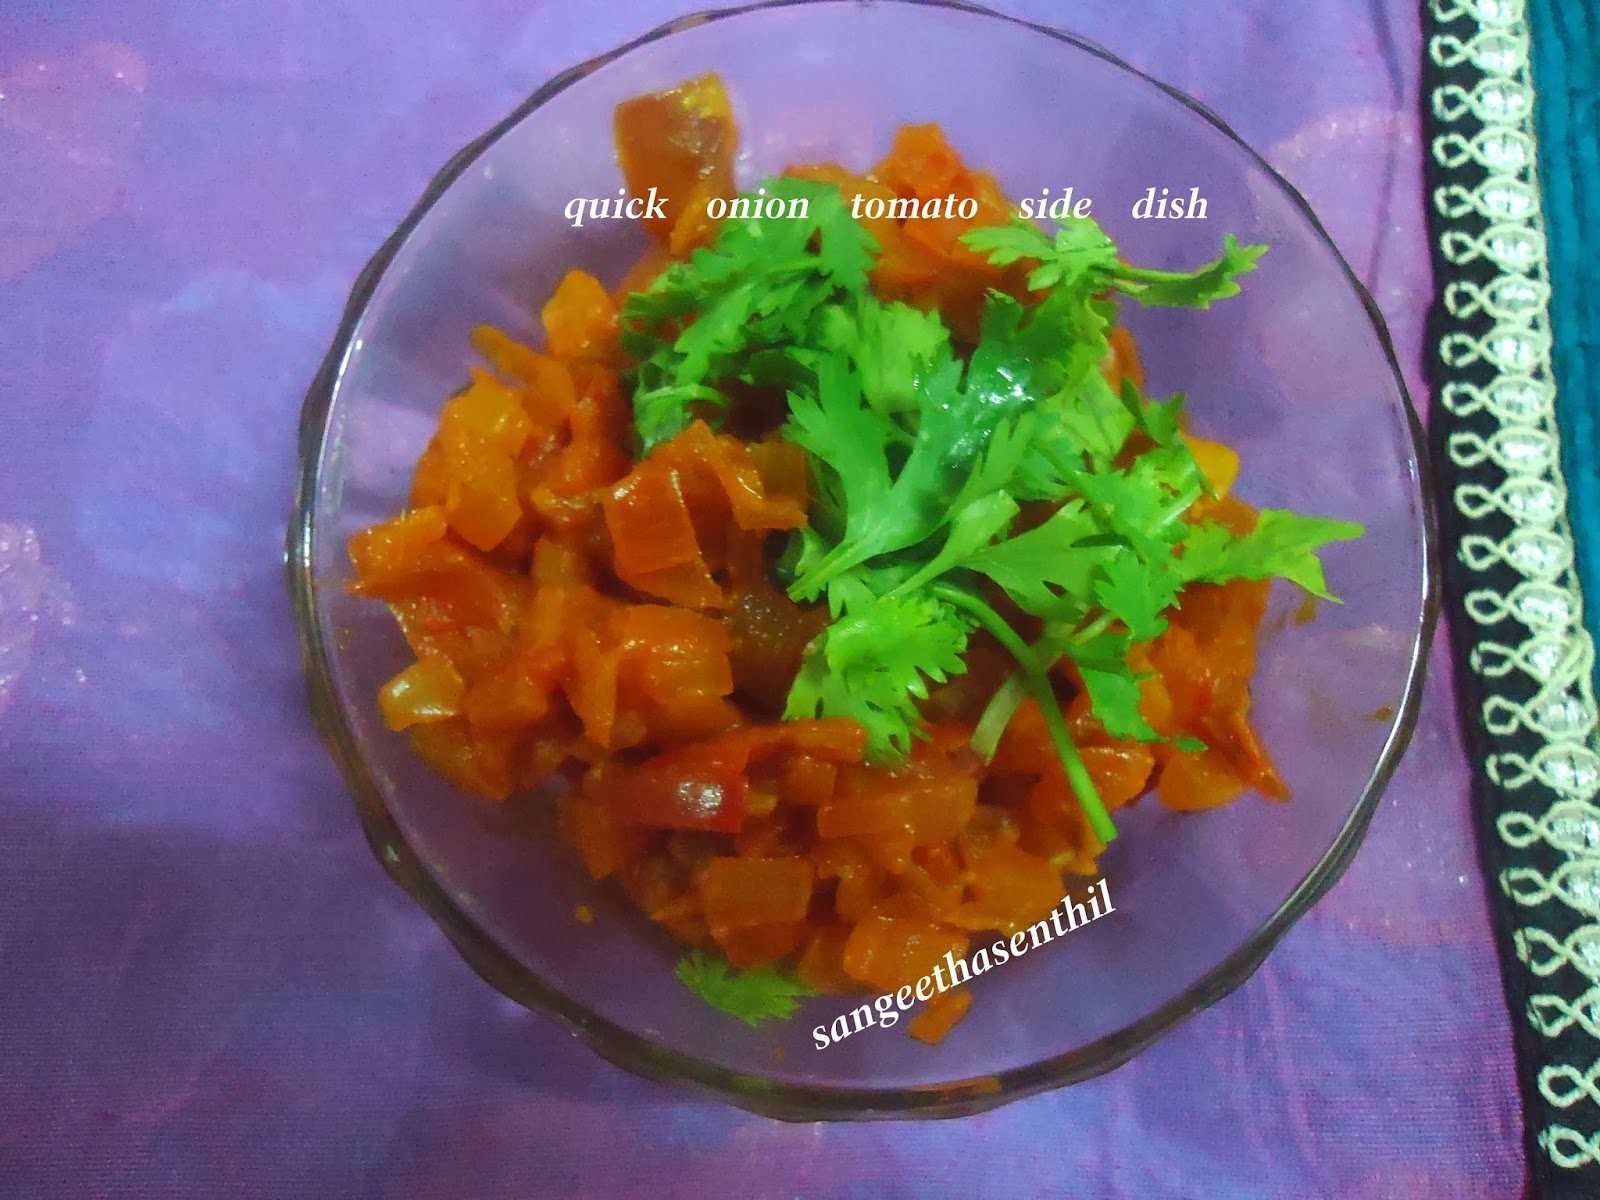 http://snowwhitesona.blogspot.in/2013/11/easy-tomato-onion-side-dish-microwave.html